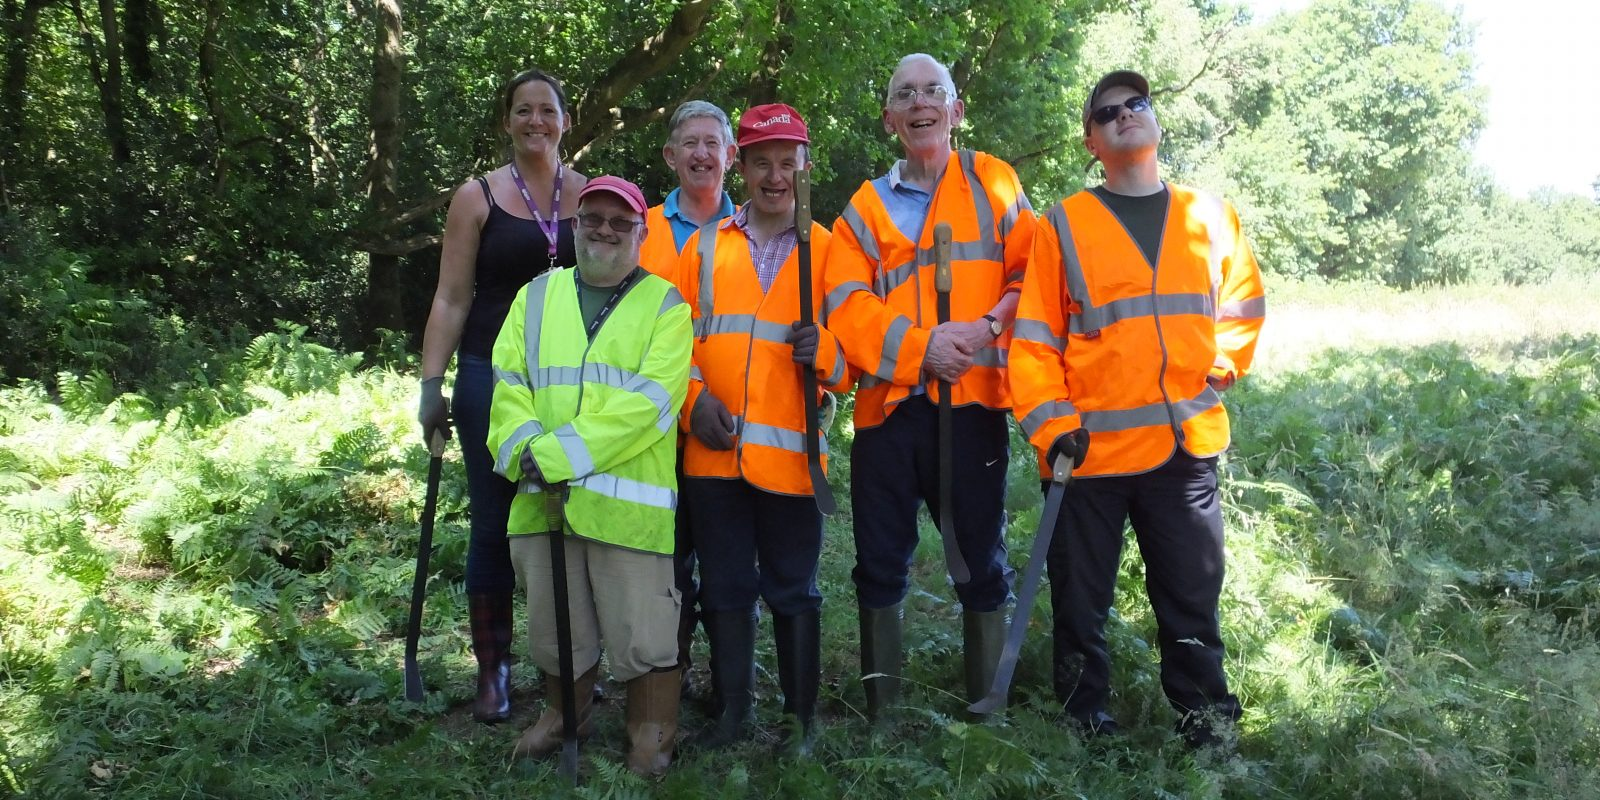 Volunteers from adult social care service Optalis help City Corporation Rangers with clearing bracken in Burnham Beeches